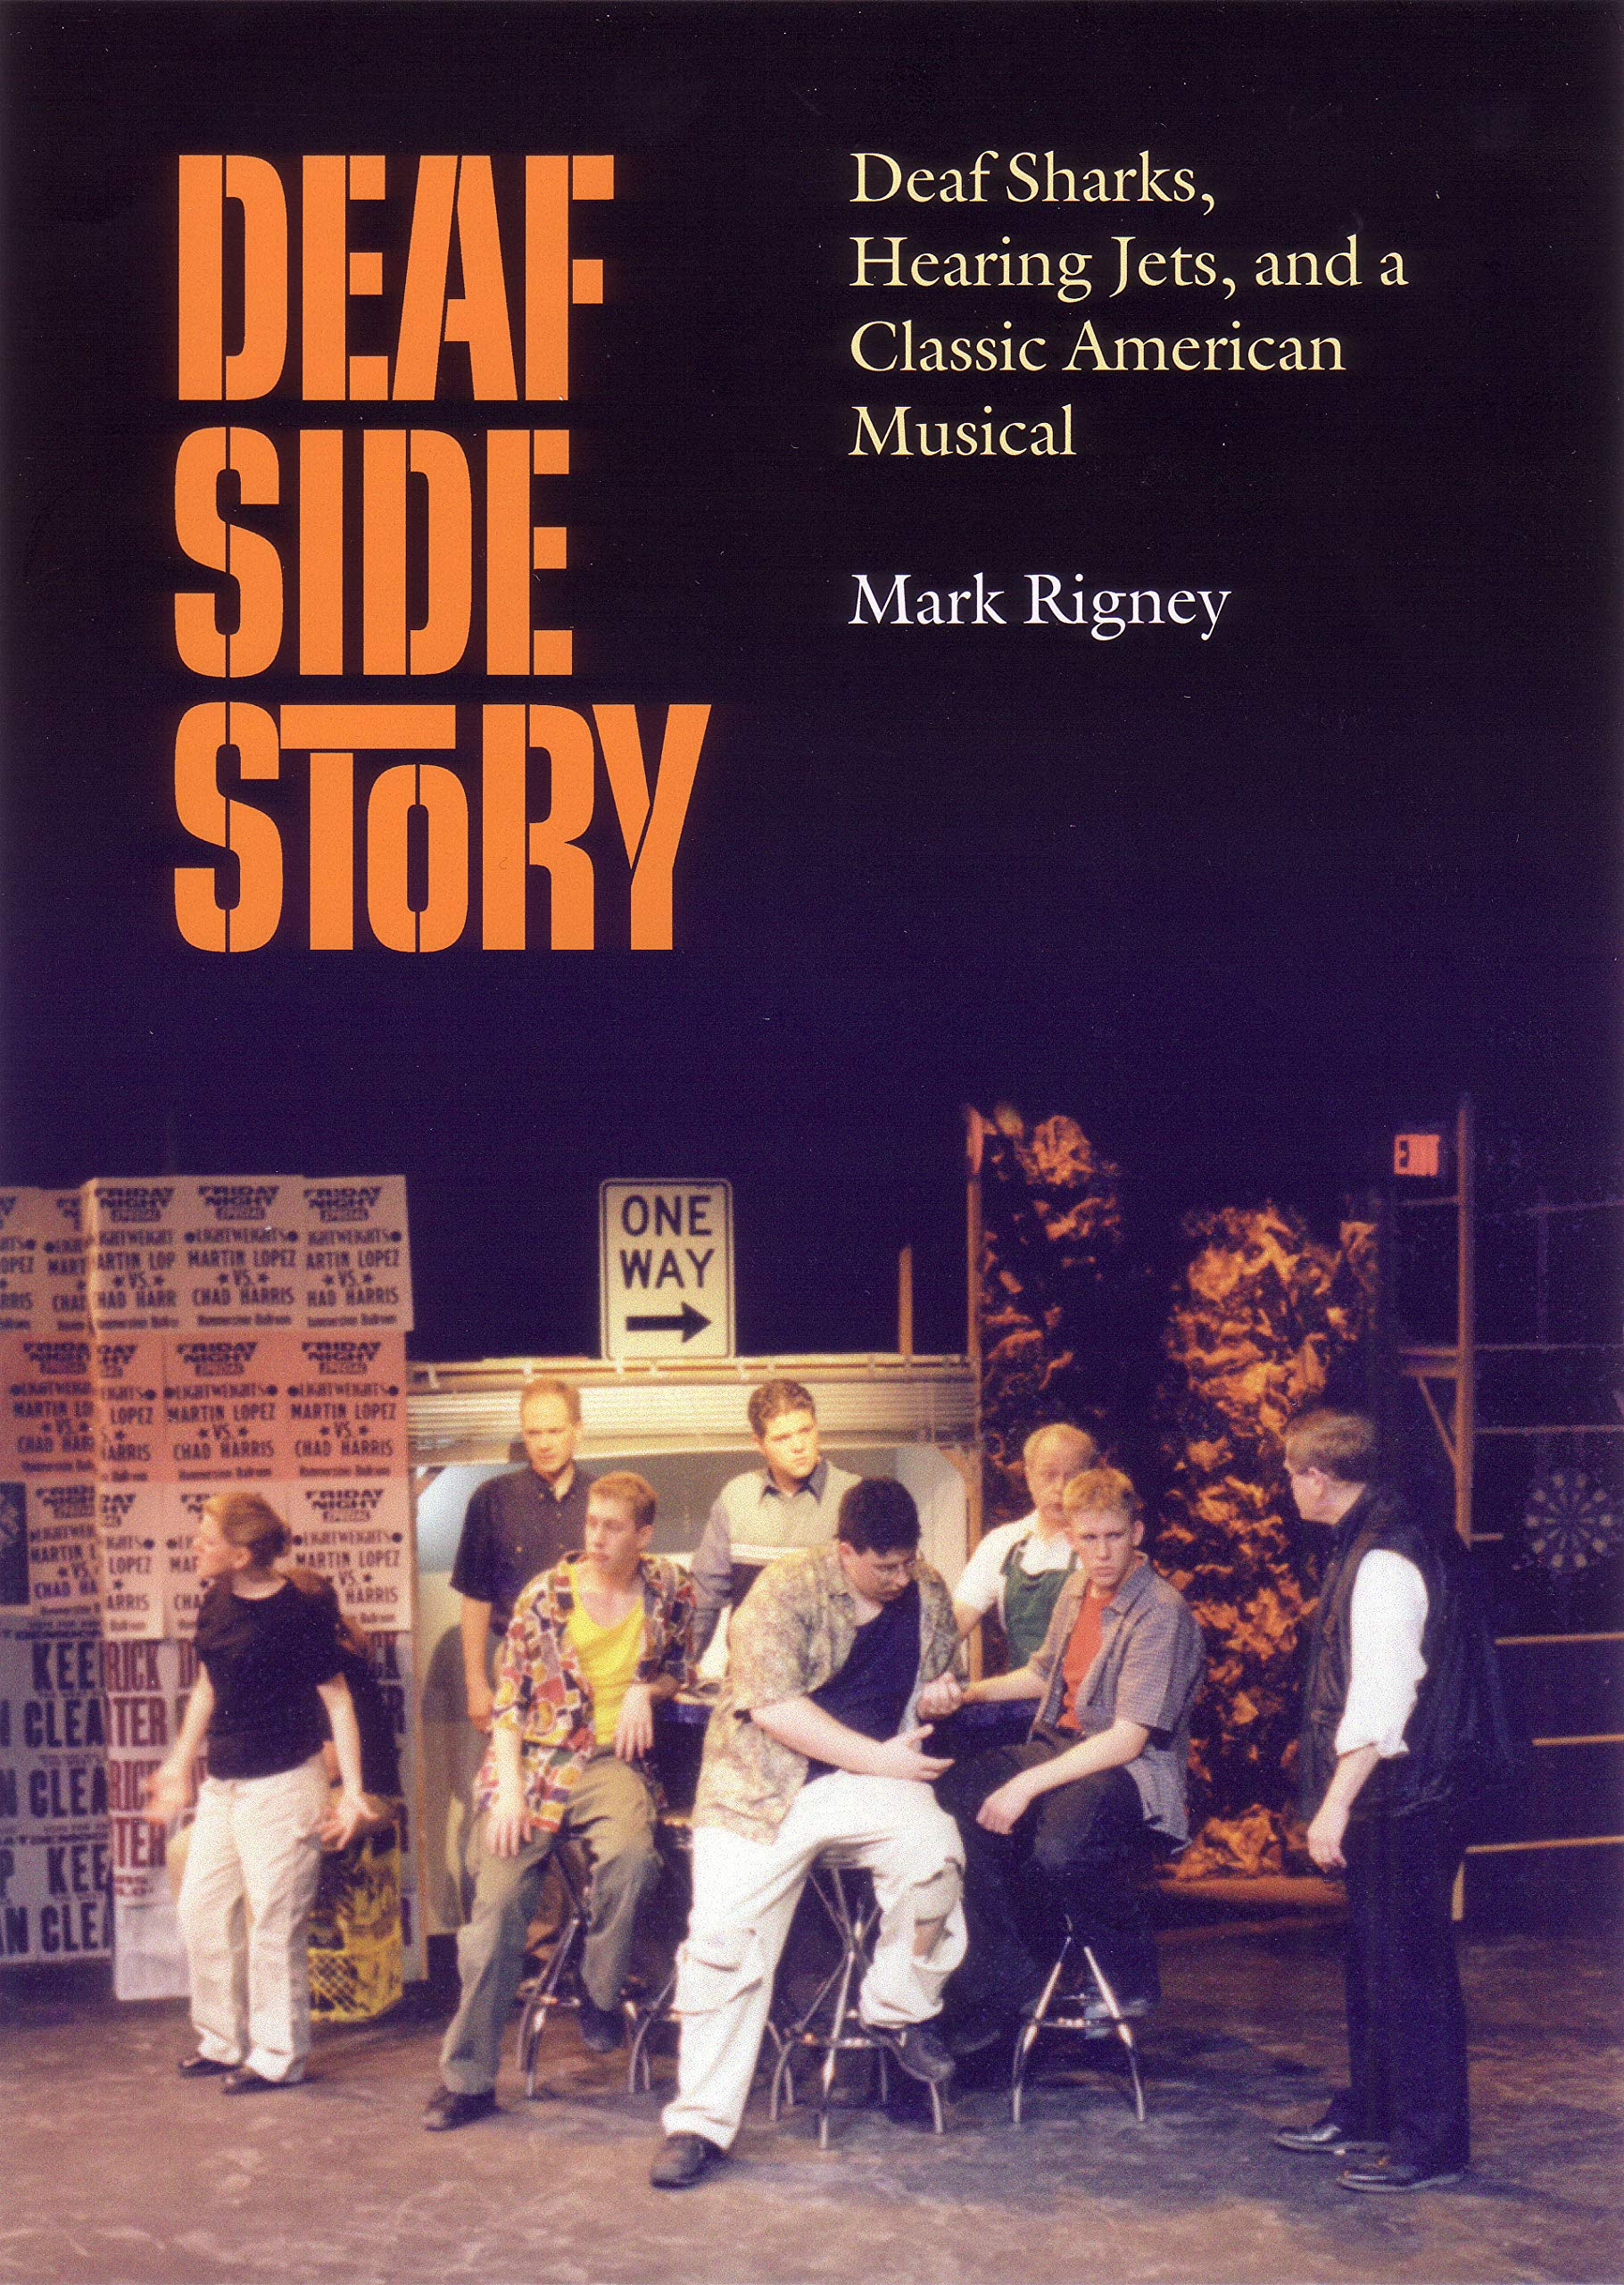 Deaf Side Story: Deaf Sharks, Hearing Jets, and a Classic American Musical Paperback – October 10, 2003 Mark Rigney Gallaudet University Press 1563681455 Sign Language